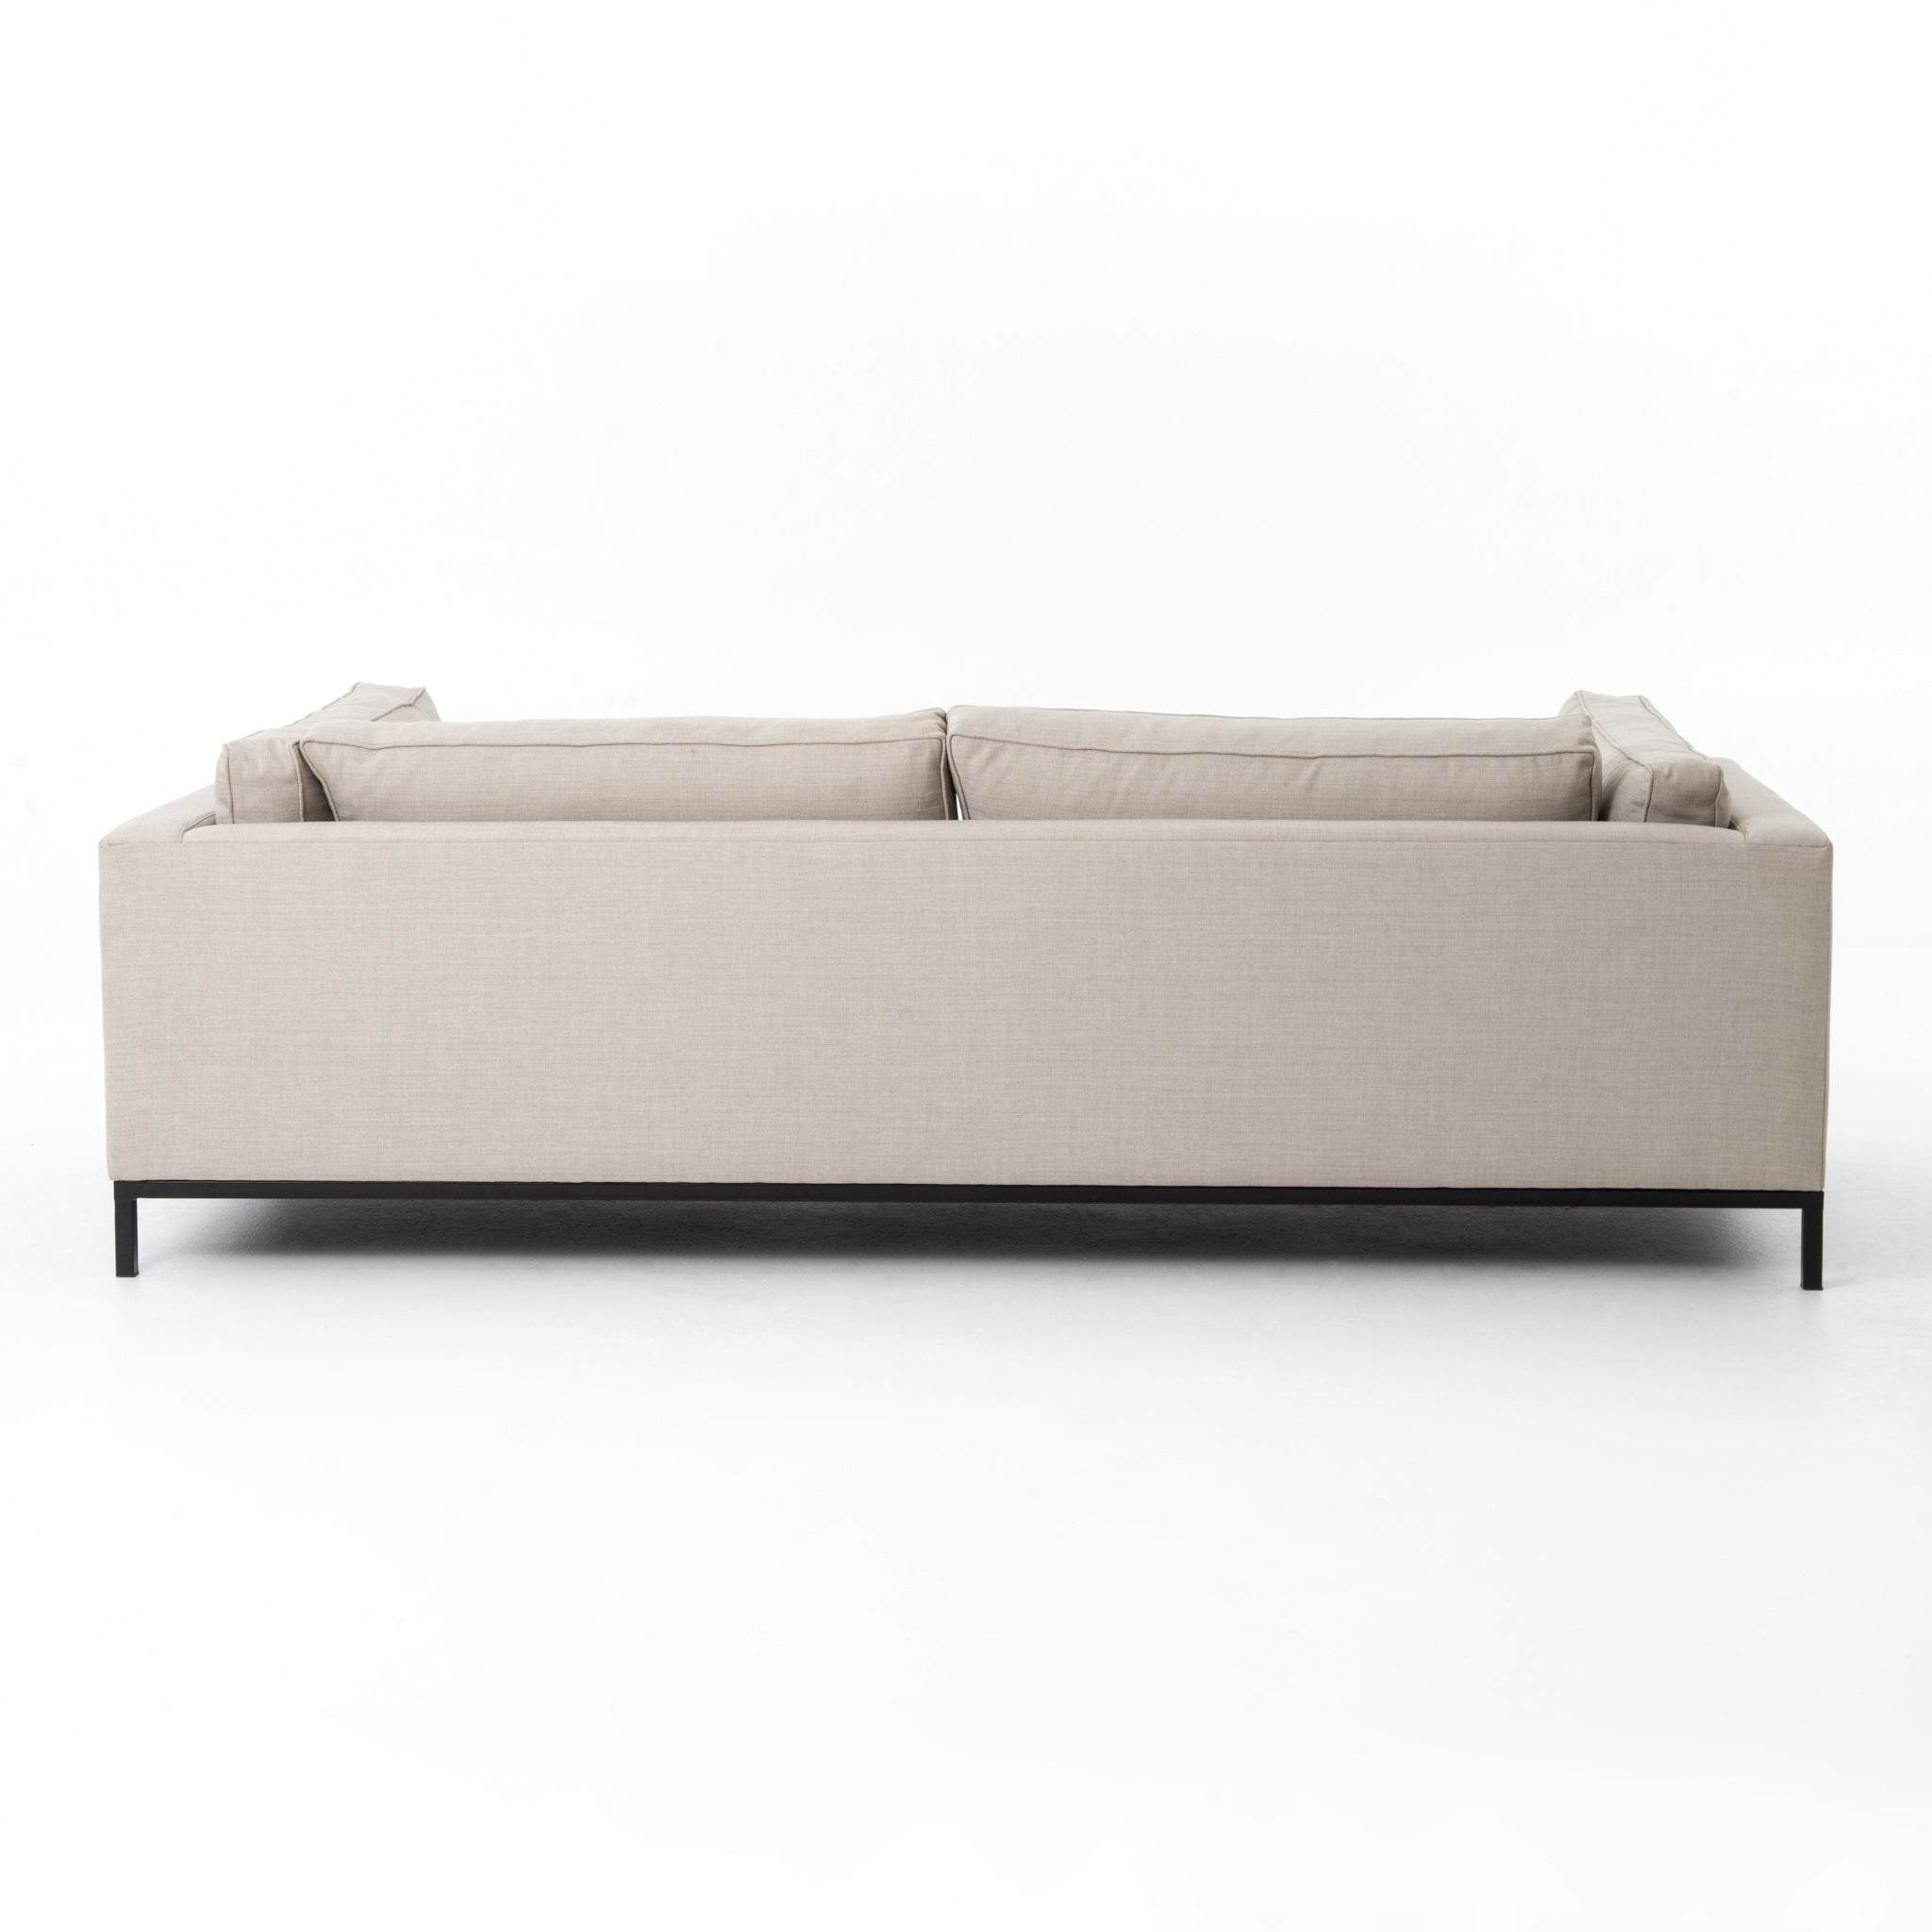 Lovecup Benning Sofa, Charcoal